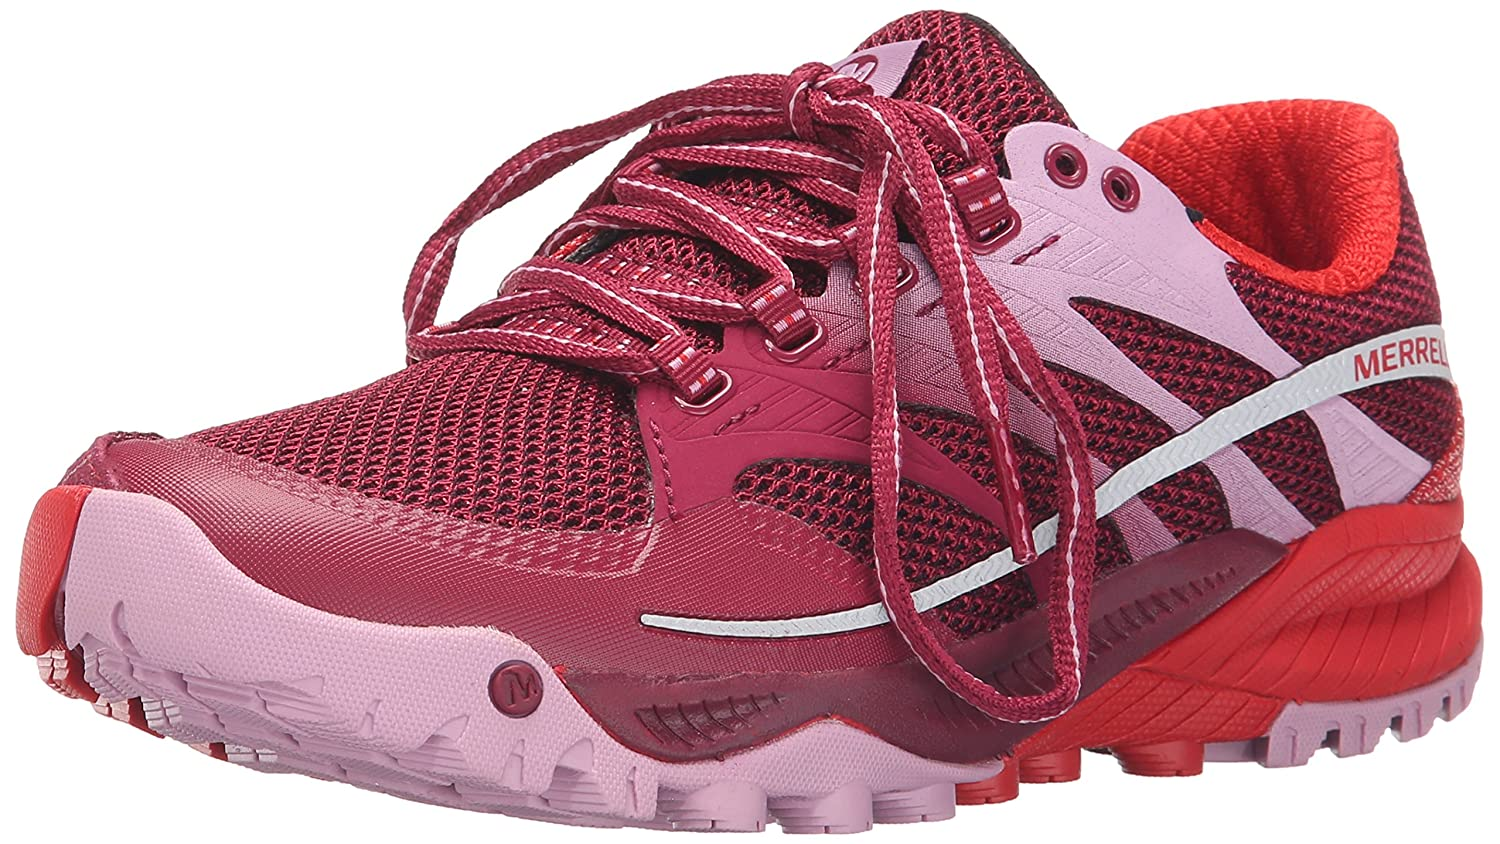 Merrell Women's All Out Charge Trail Running Shoe B00YBE7P5O 5.5 B(M) US|Bright Red